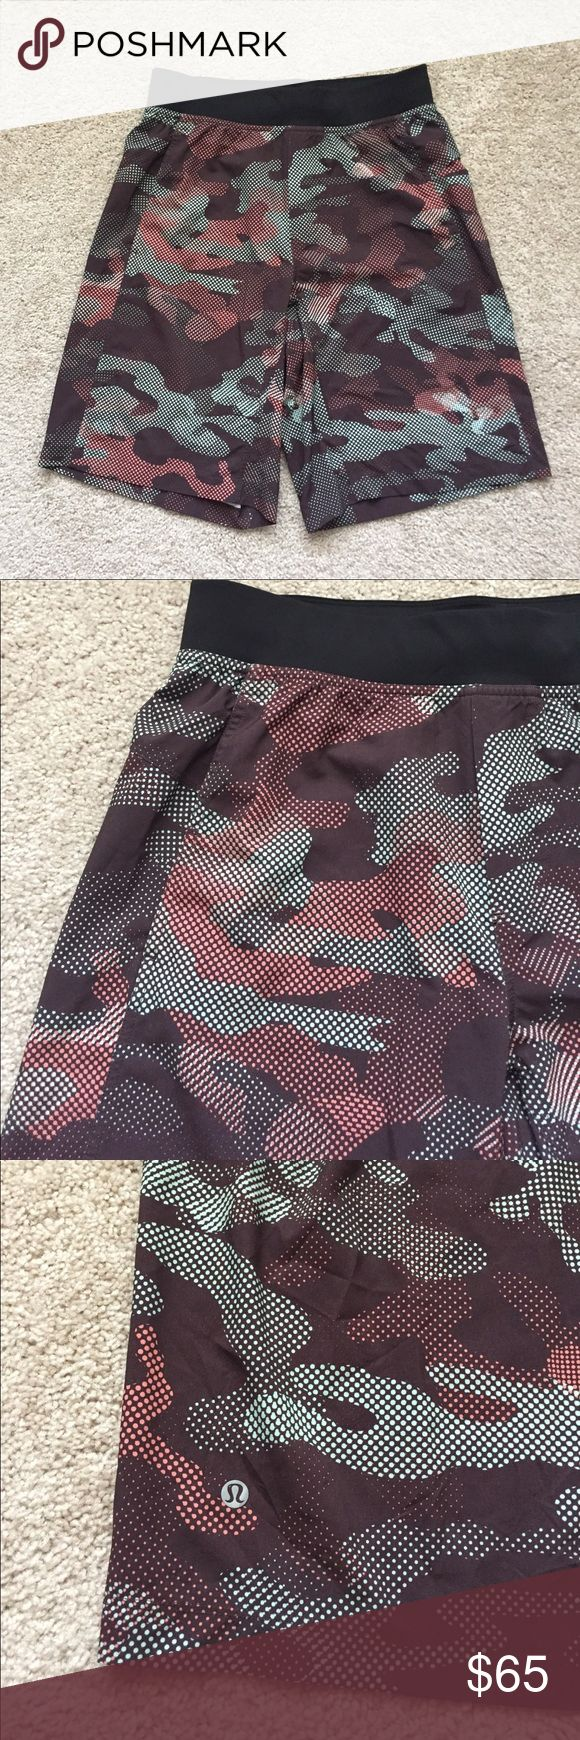 """Lululemon men's brown camo shorts sz med Excellent condition brown camo shorts with pockets ! Does not have built in shorts or underwear. Length is 20.5"""" lululemon athletica Shorts Athletic"""